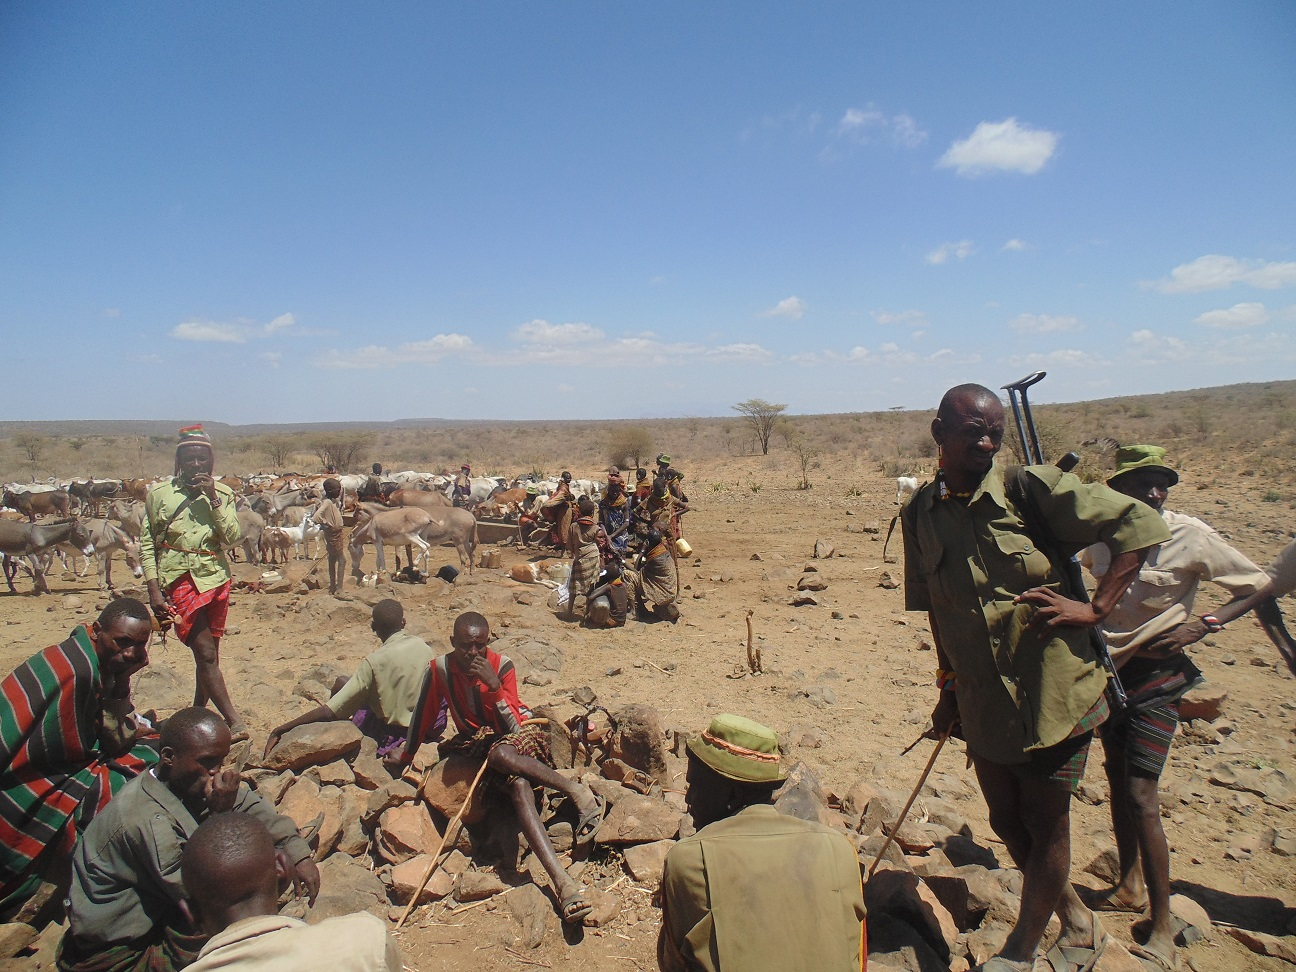 Cattle Raids in Northern Kenya